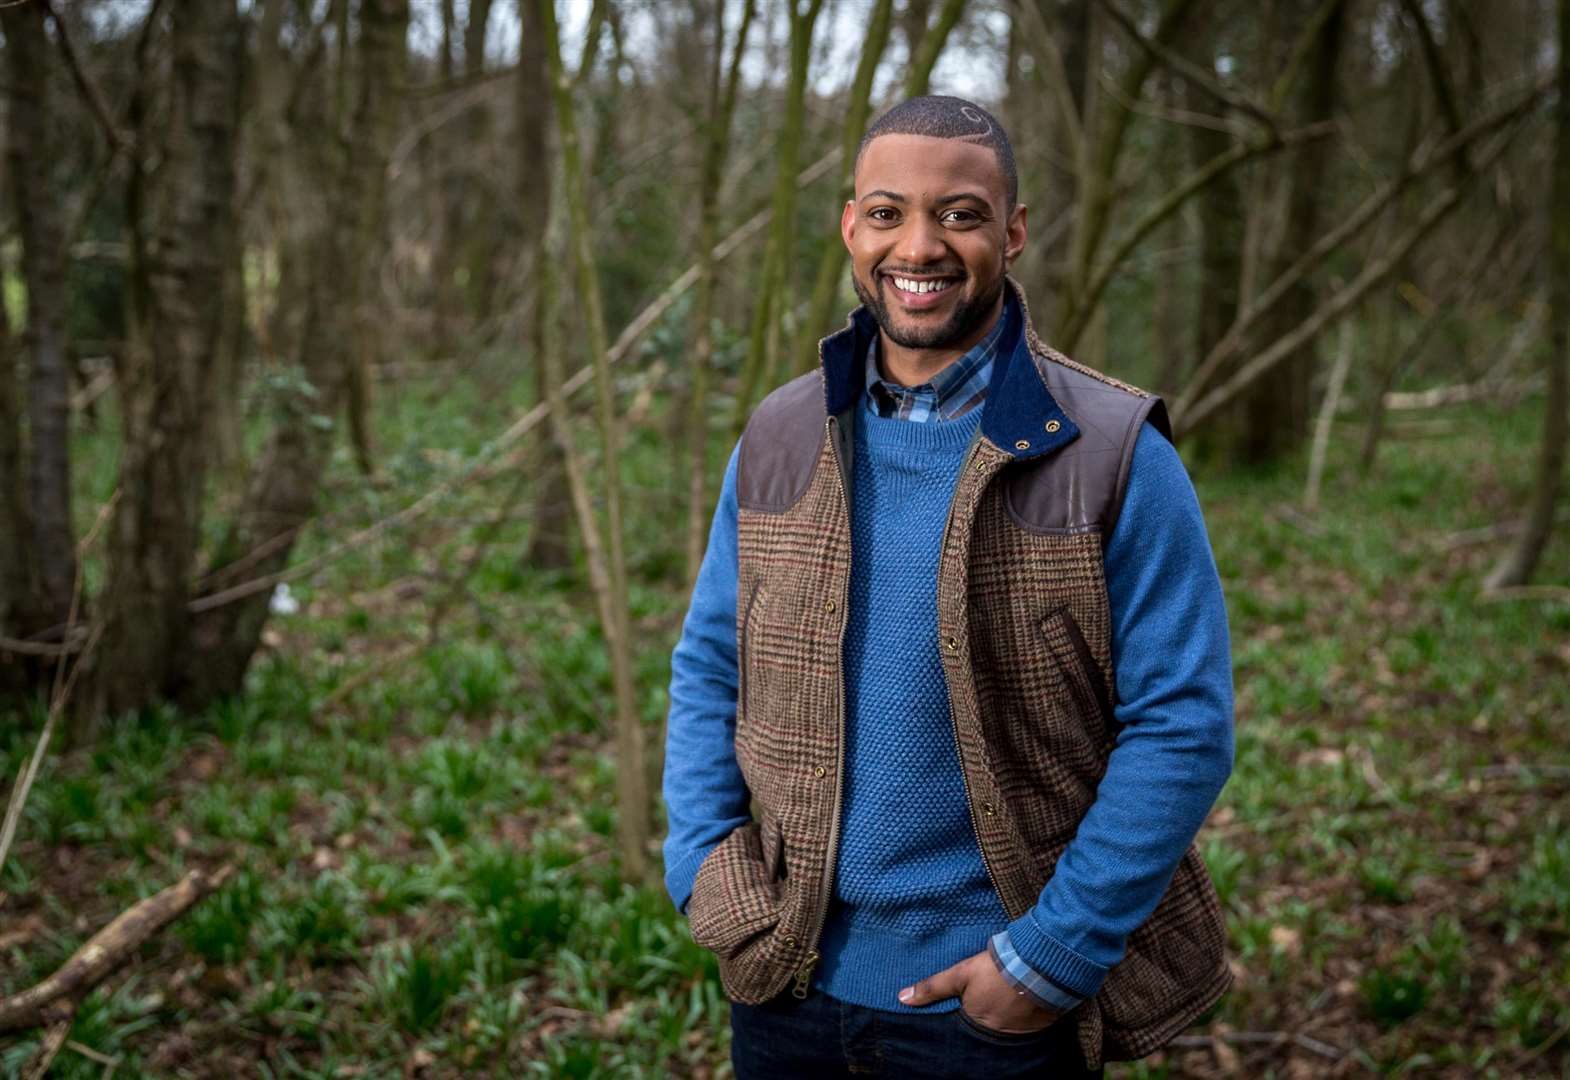 Riverbank tales with JLS's JB Gill